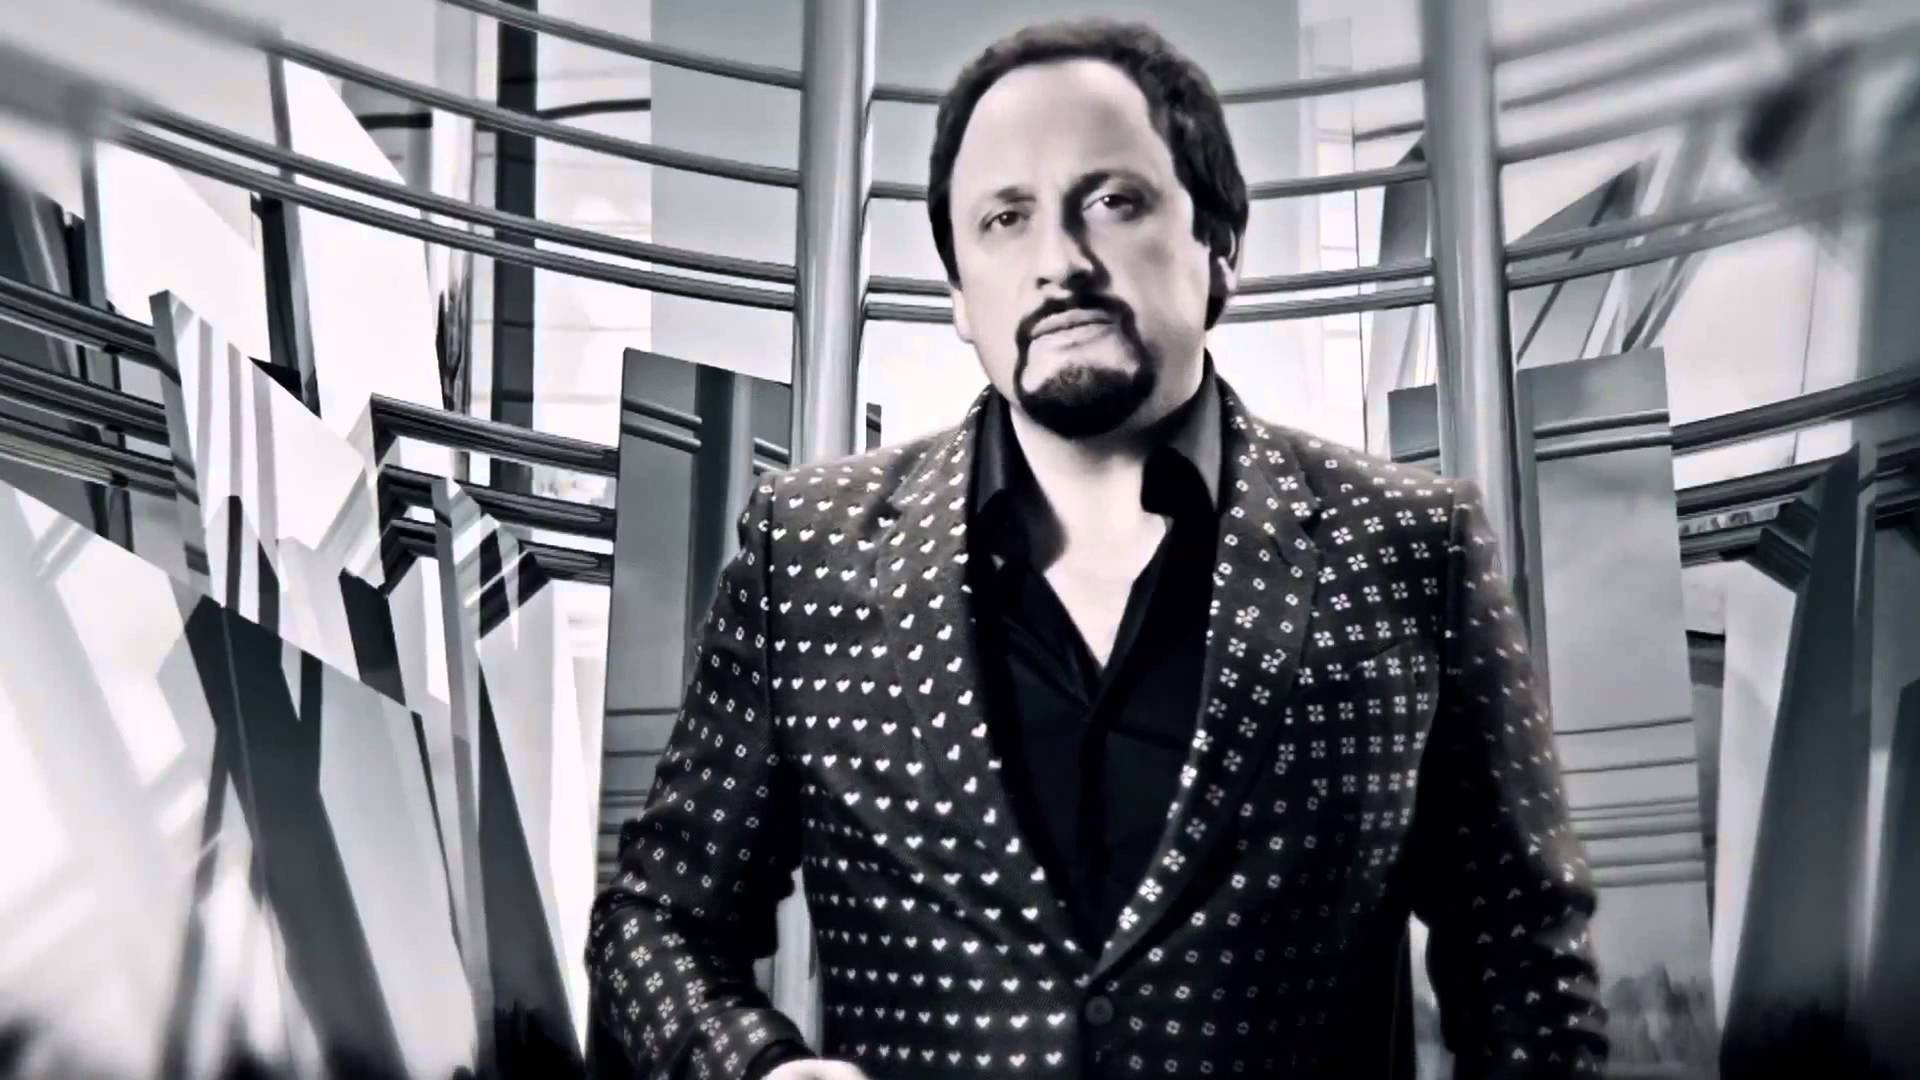 Stas Mikhailov was hospitalized in Stavropol What happened to the artist